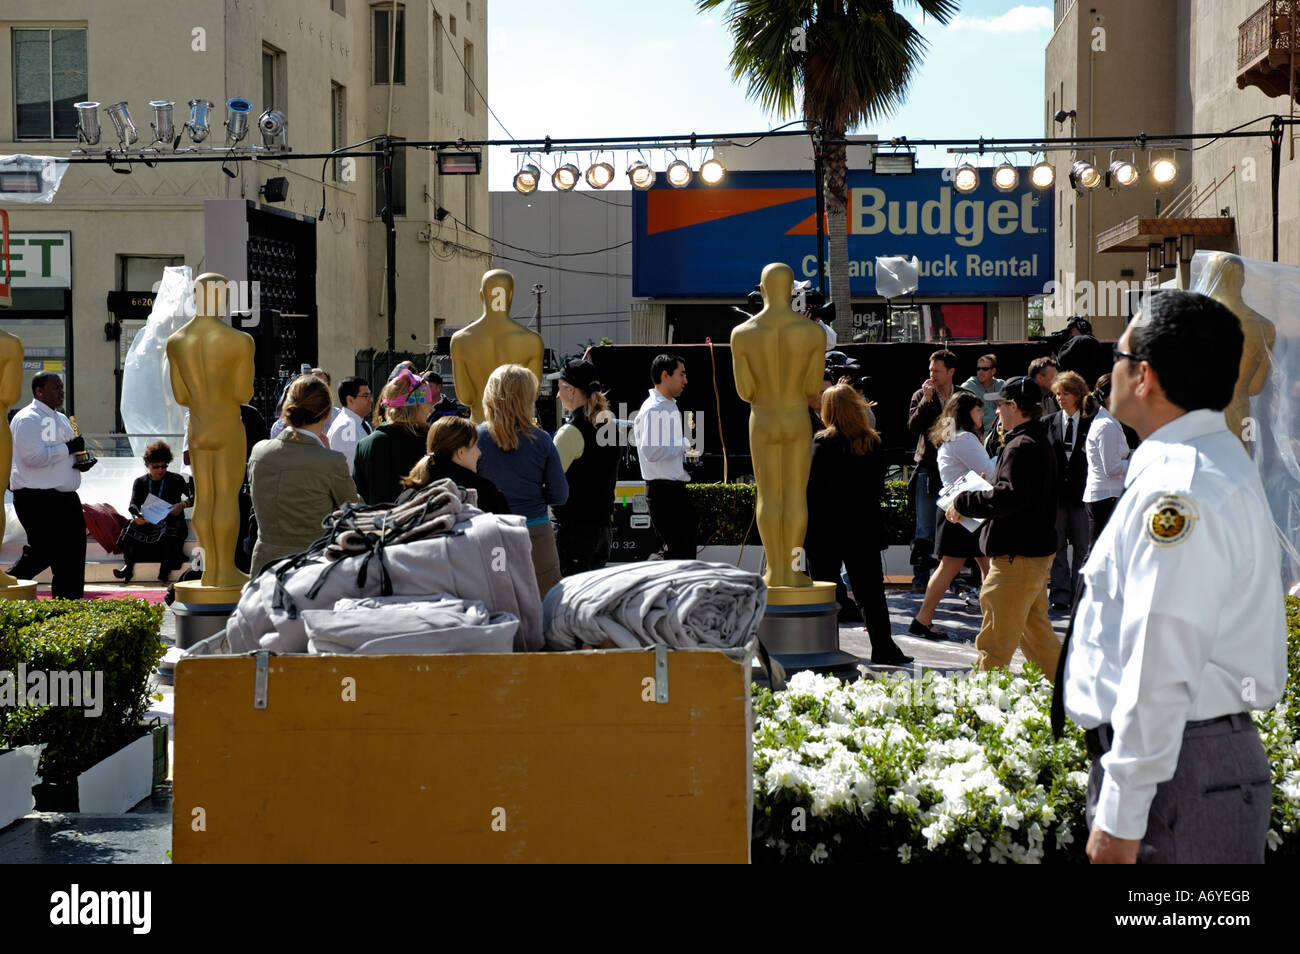 The Day Before 78th Academy Awards Ceremony 50 Oscar Statuettes Were Walked Down Red Carpet By ICF Film Students